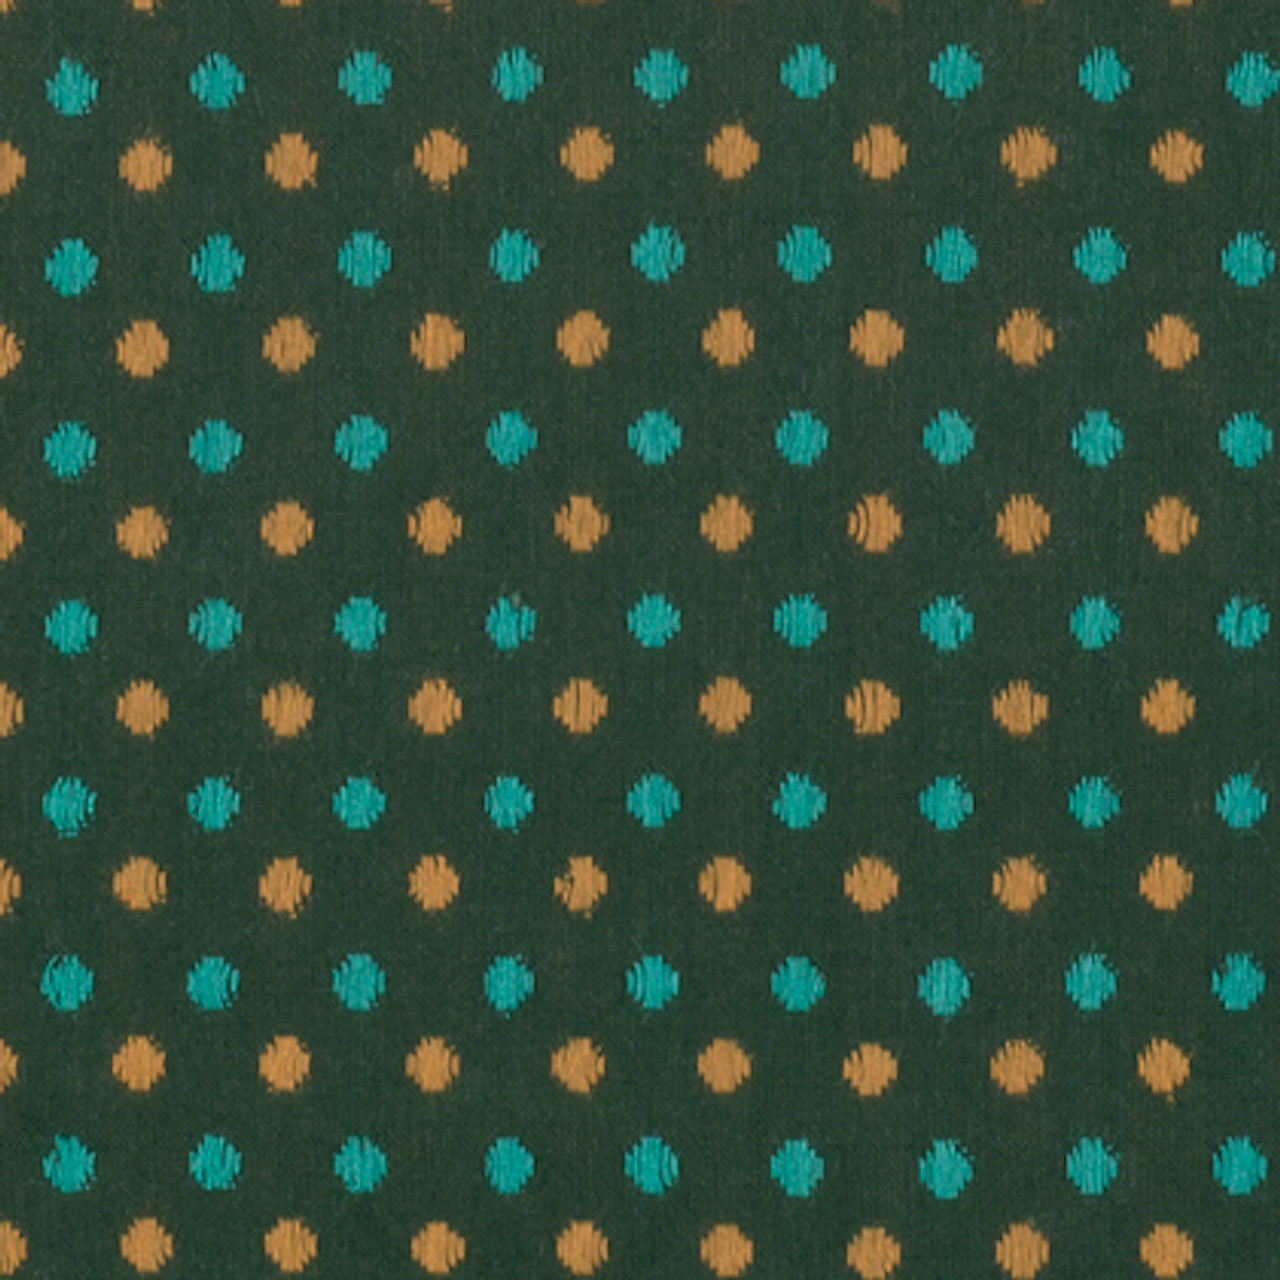 Anna Maria Horner WOAH014 Loominous Slightly Forest Cotton Fabric By Yd